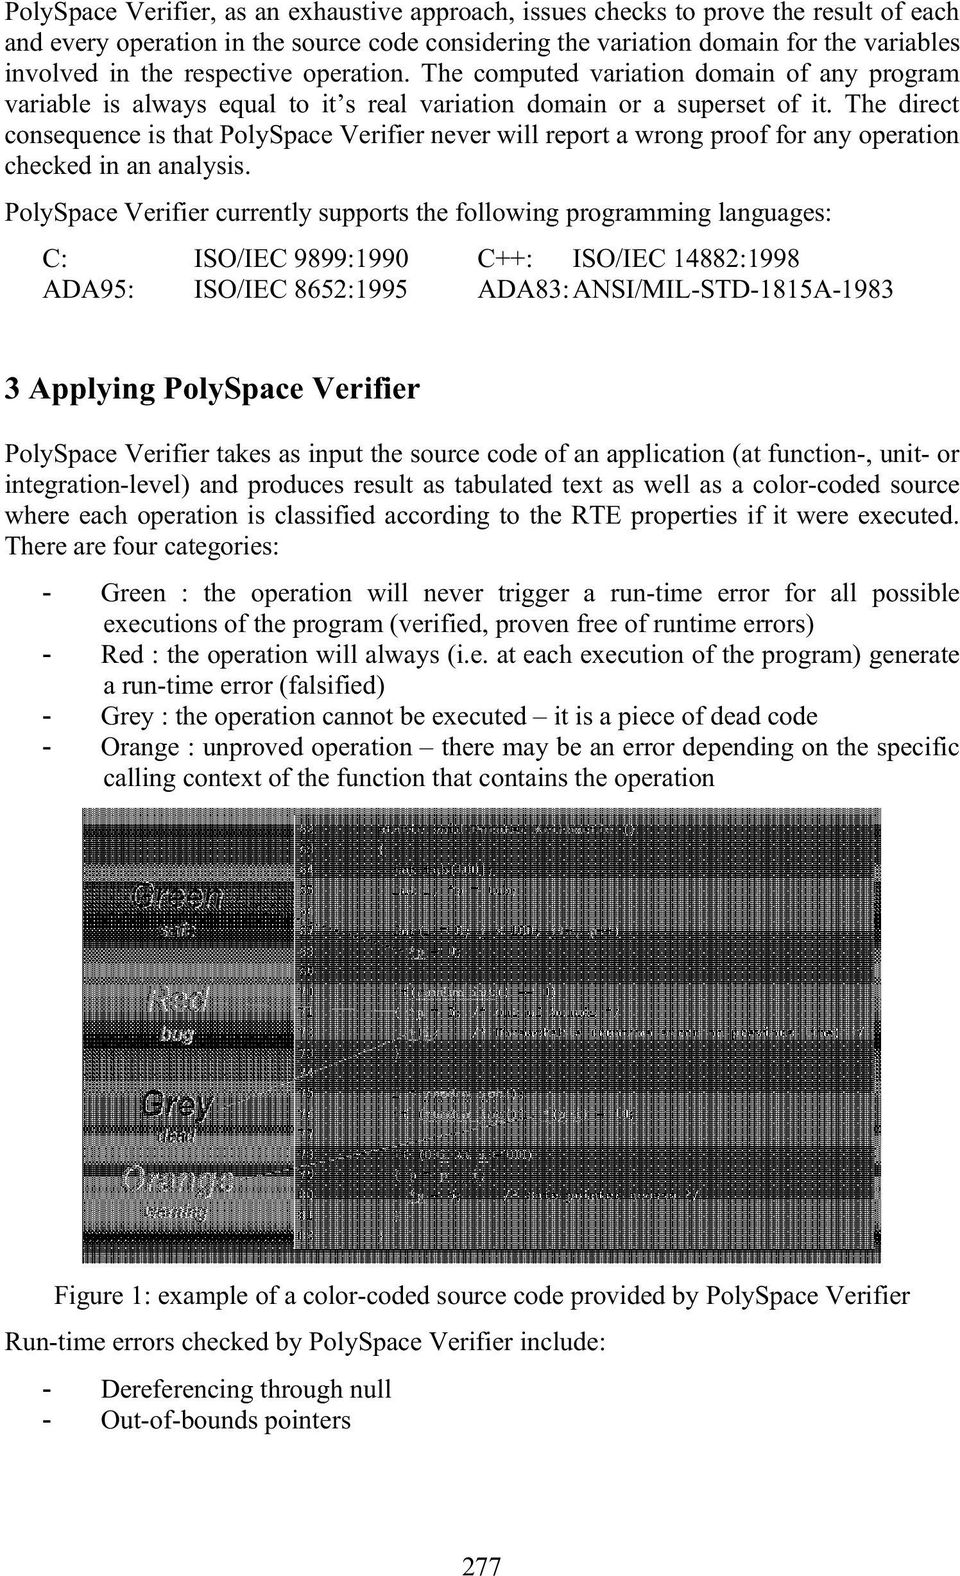 The direct consequence is that PolySpace Verifier never will report a wrong proof for any operation checked in ananalysis.